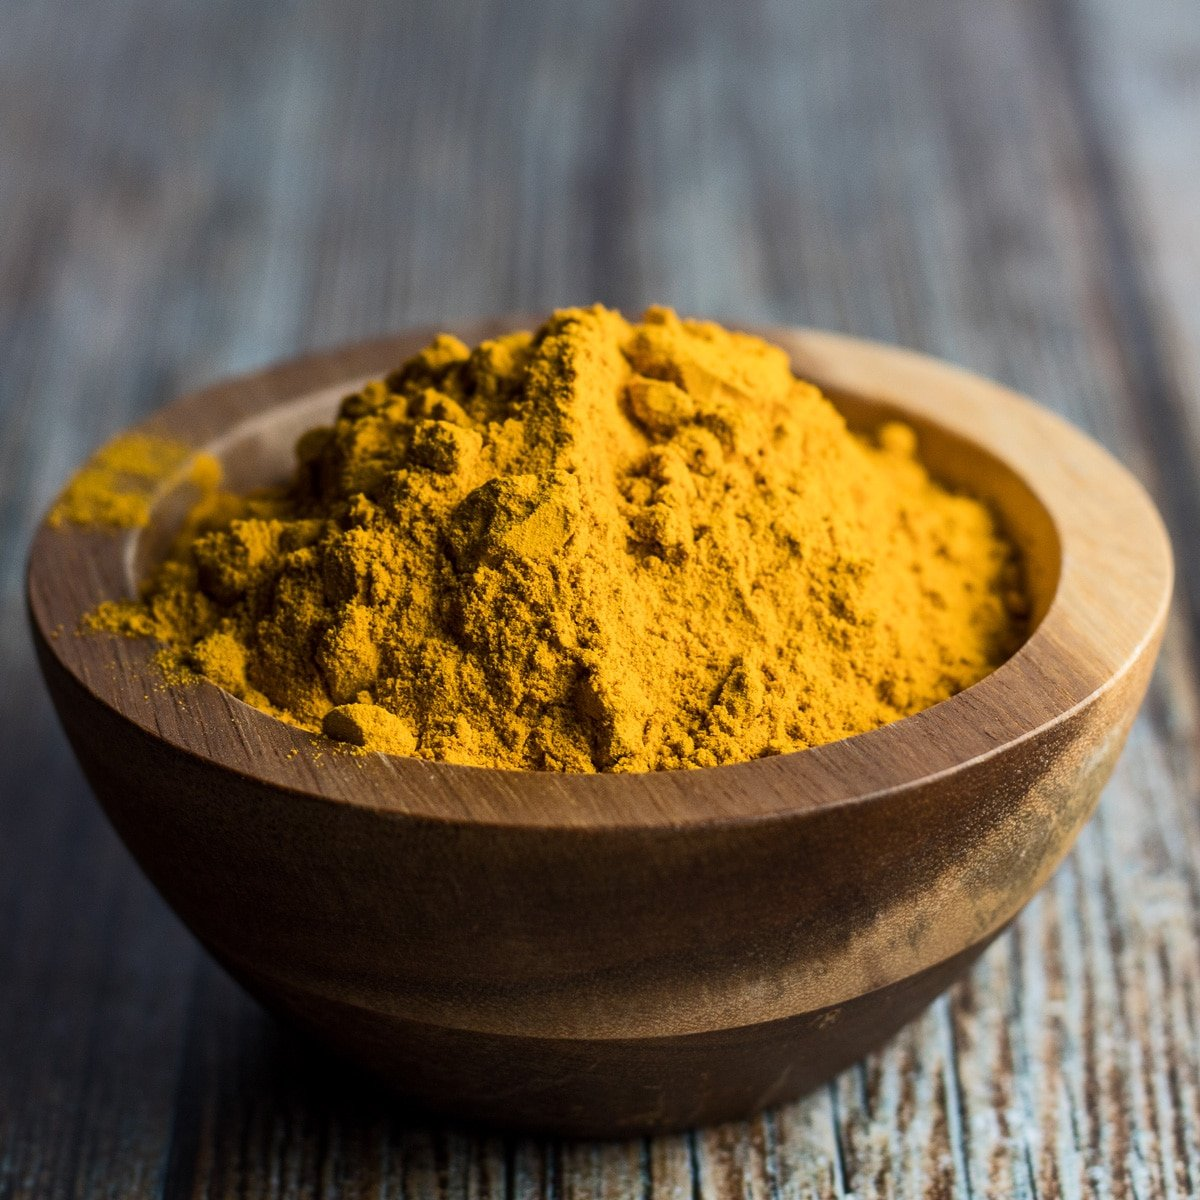 Loose ground turmeric in wooden bowl on wooden grain background.